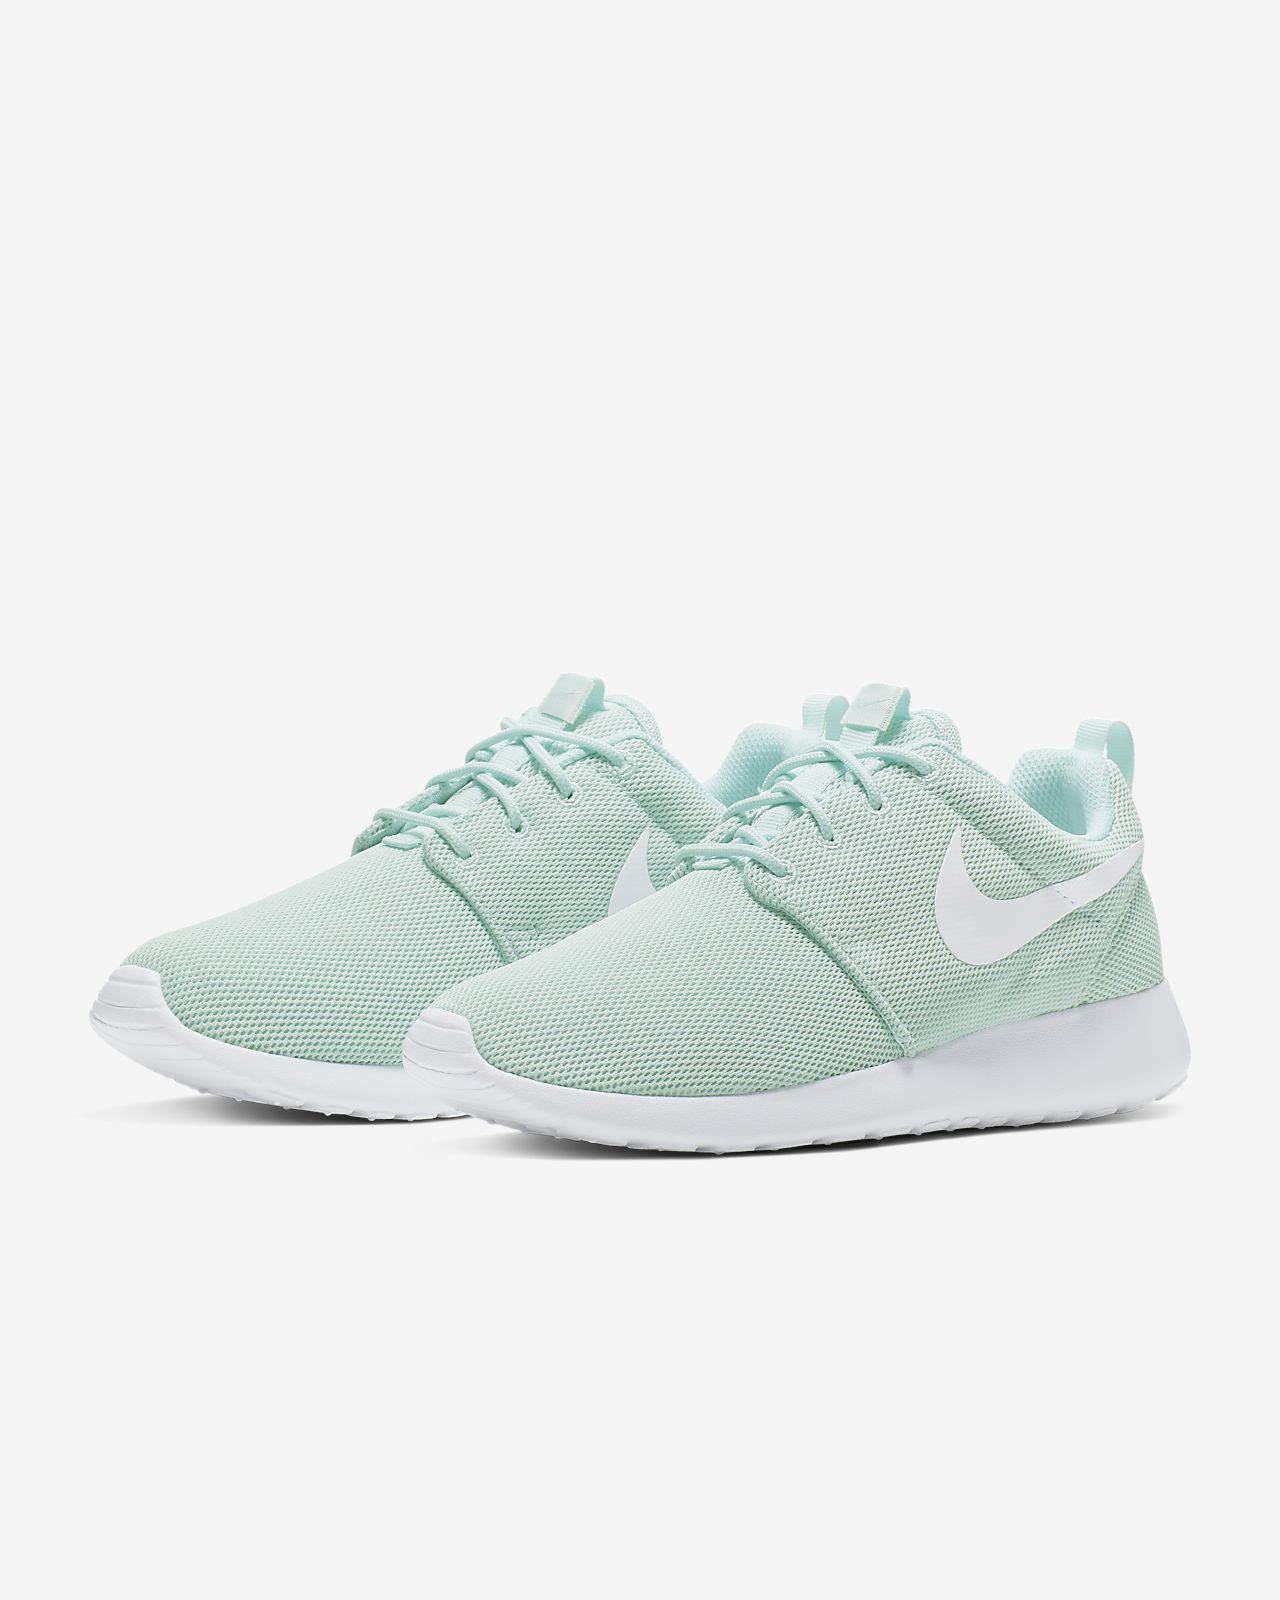 premium selection 4a3bb e8a05 ... Nike Roshe One Women s Shoe